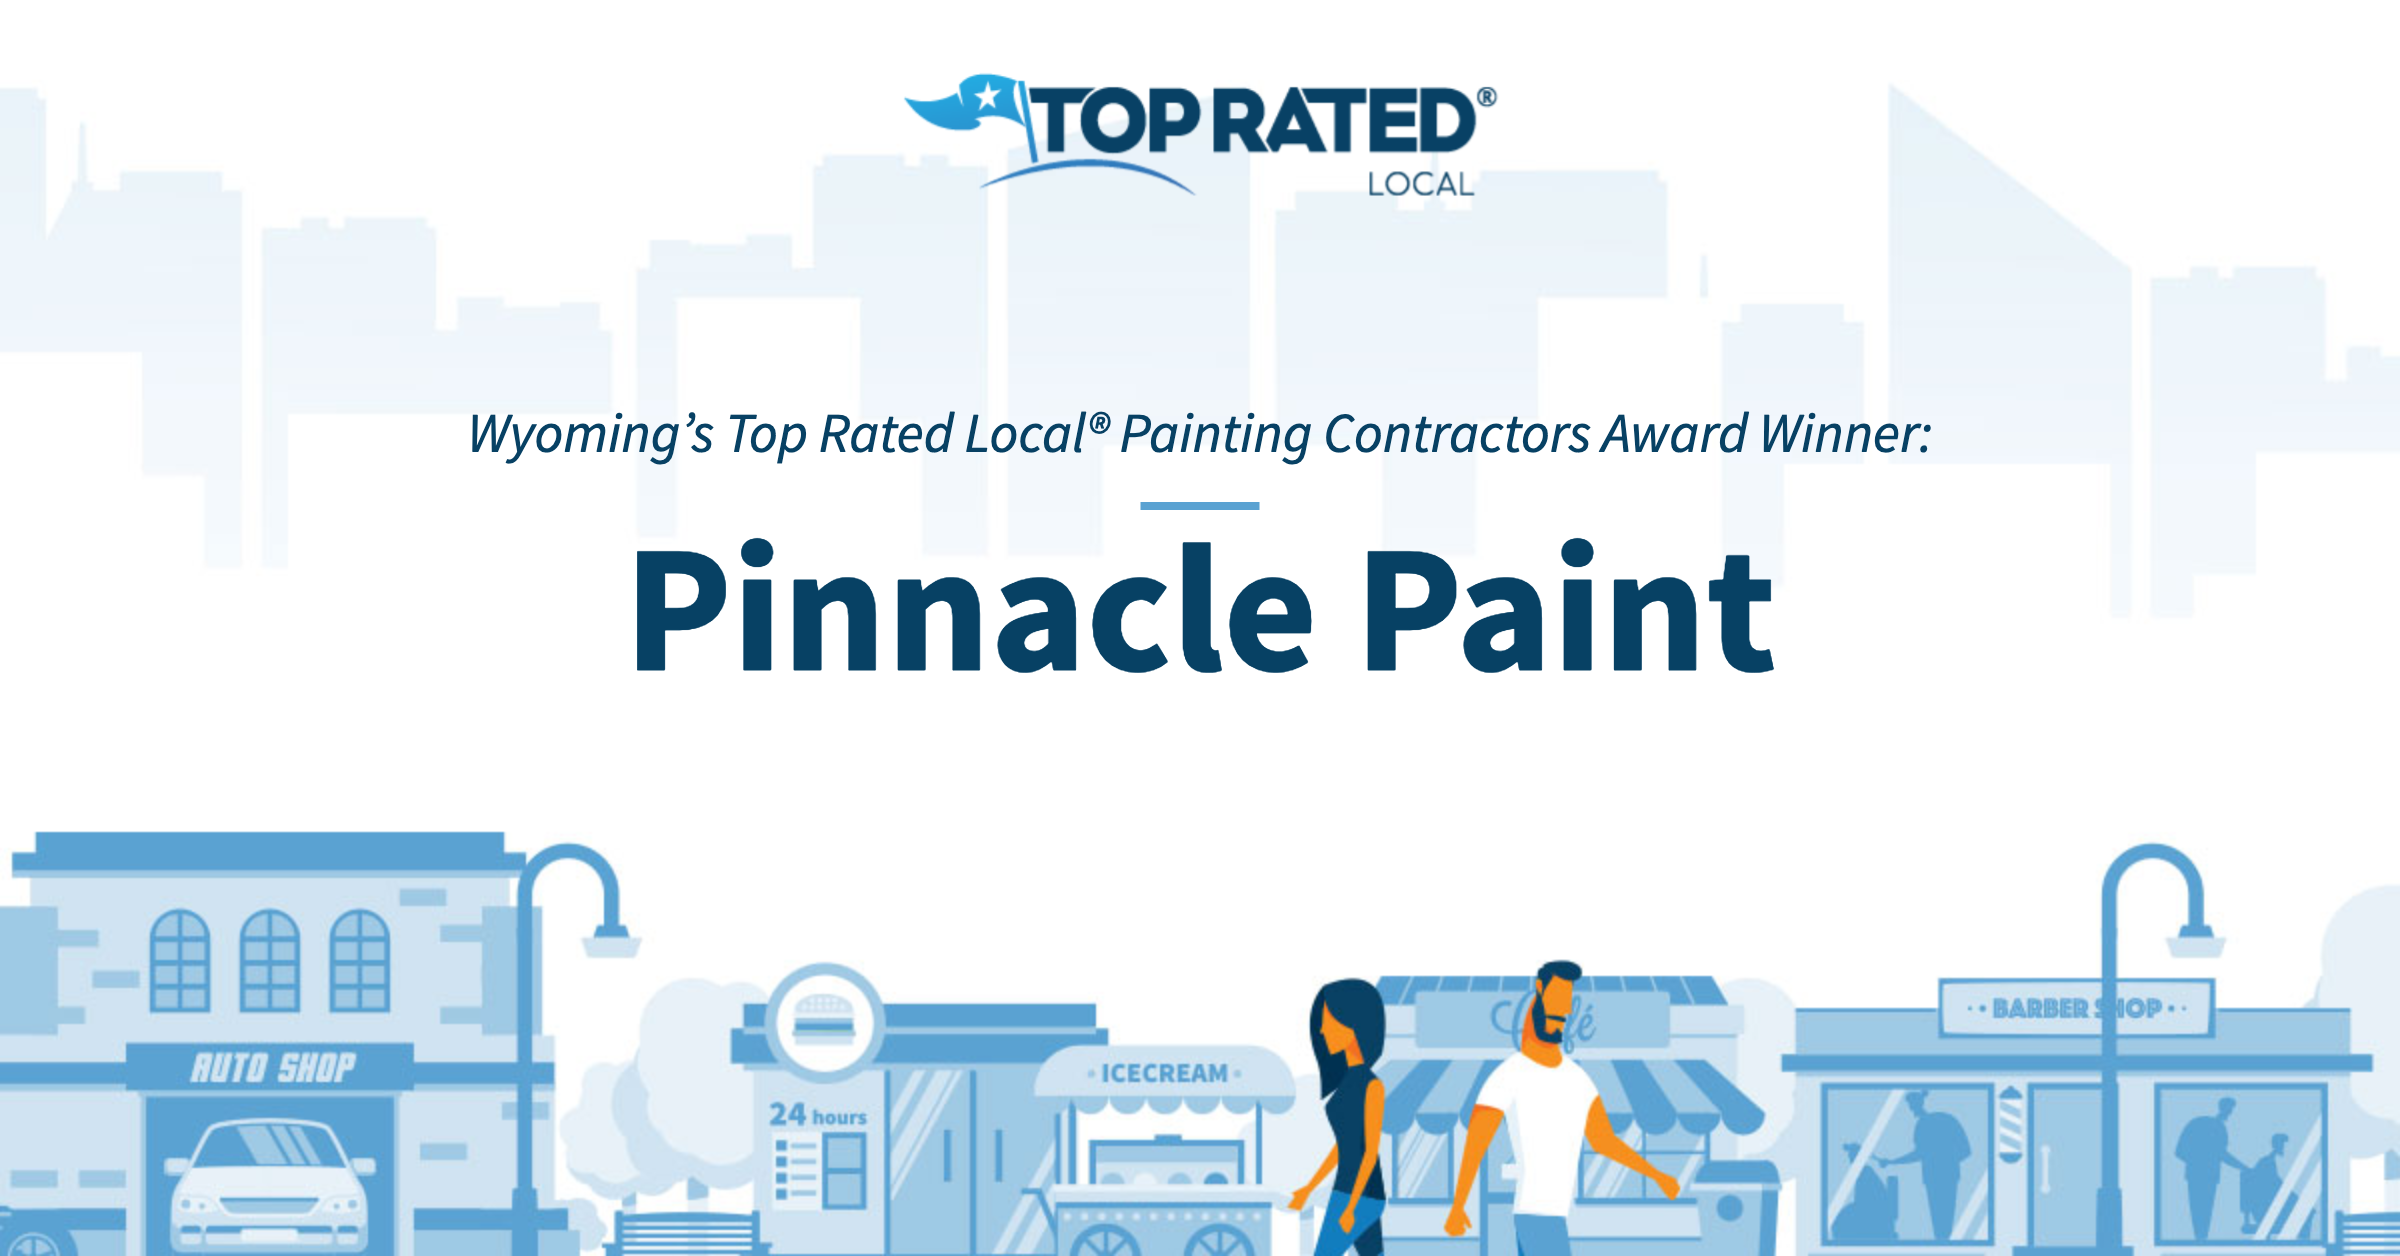 Wyoming's Top Rated Local® Painting Contractors Award Winner: Pinnacle Paint